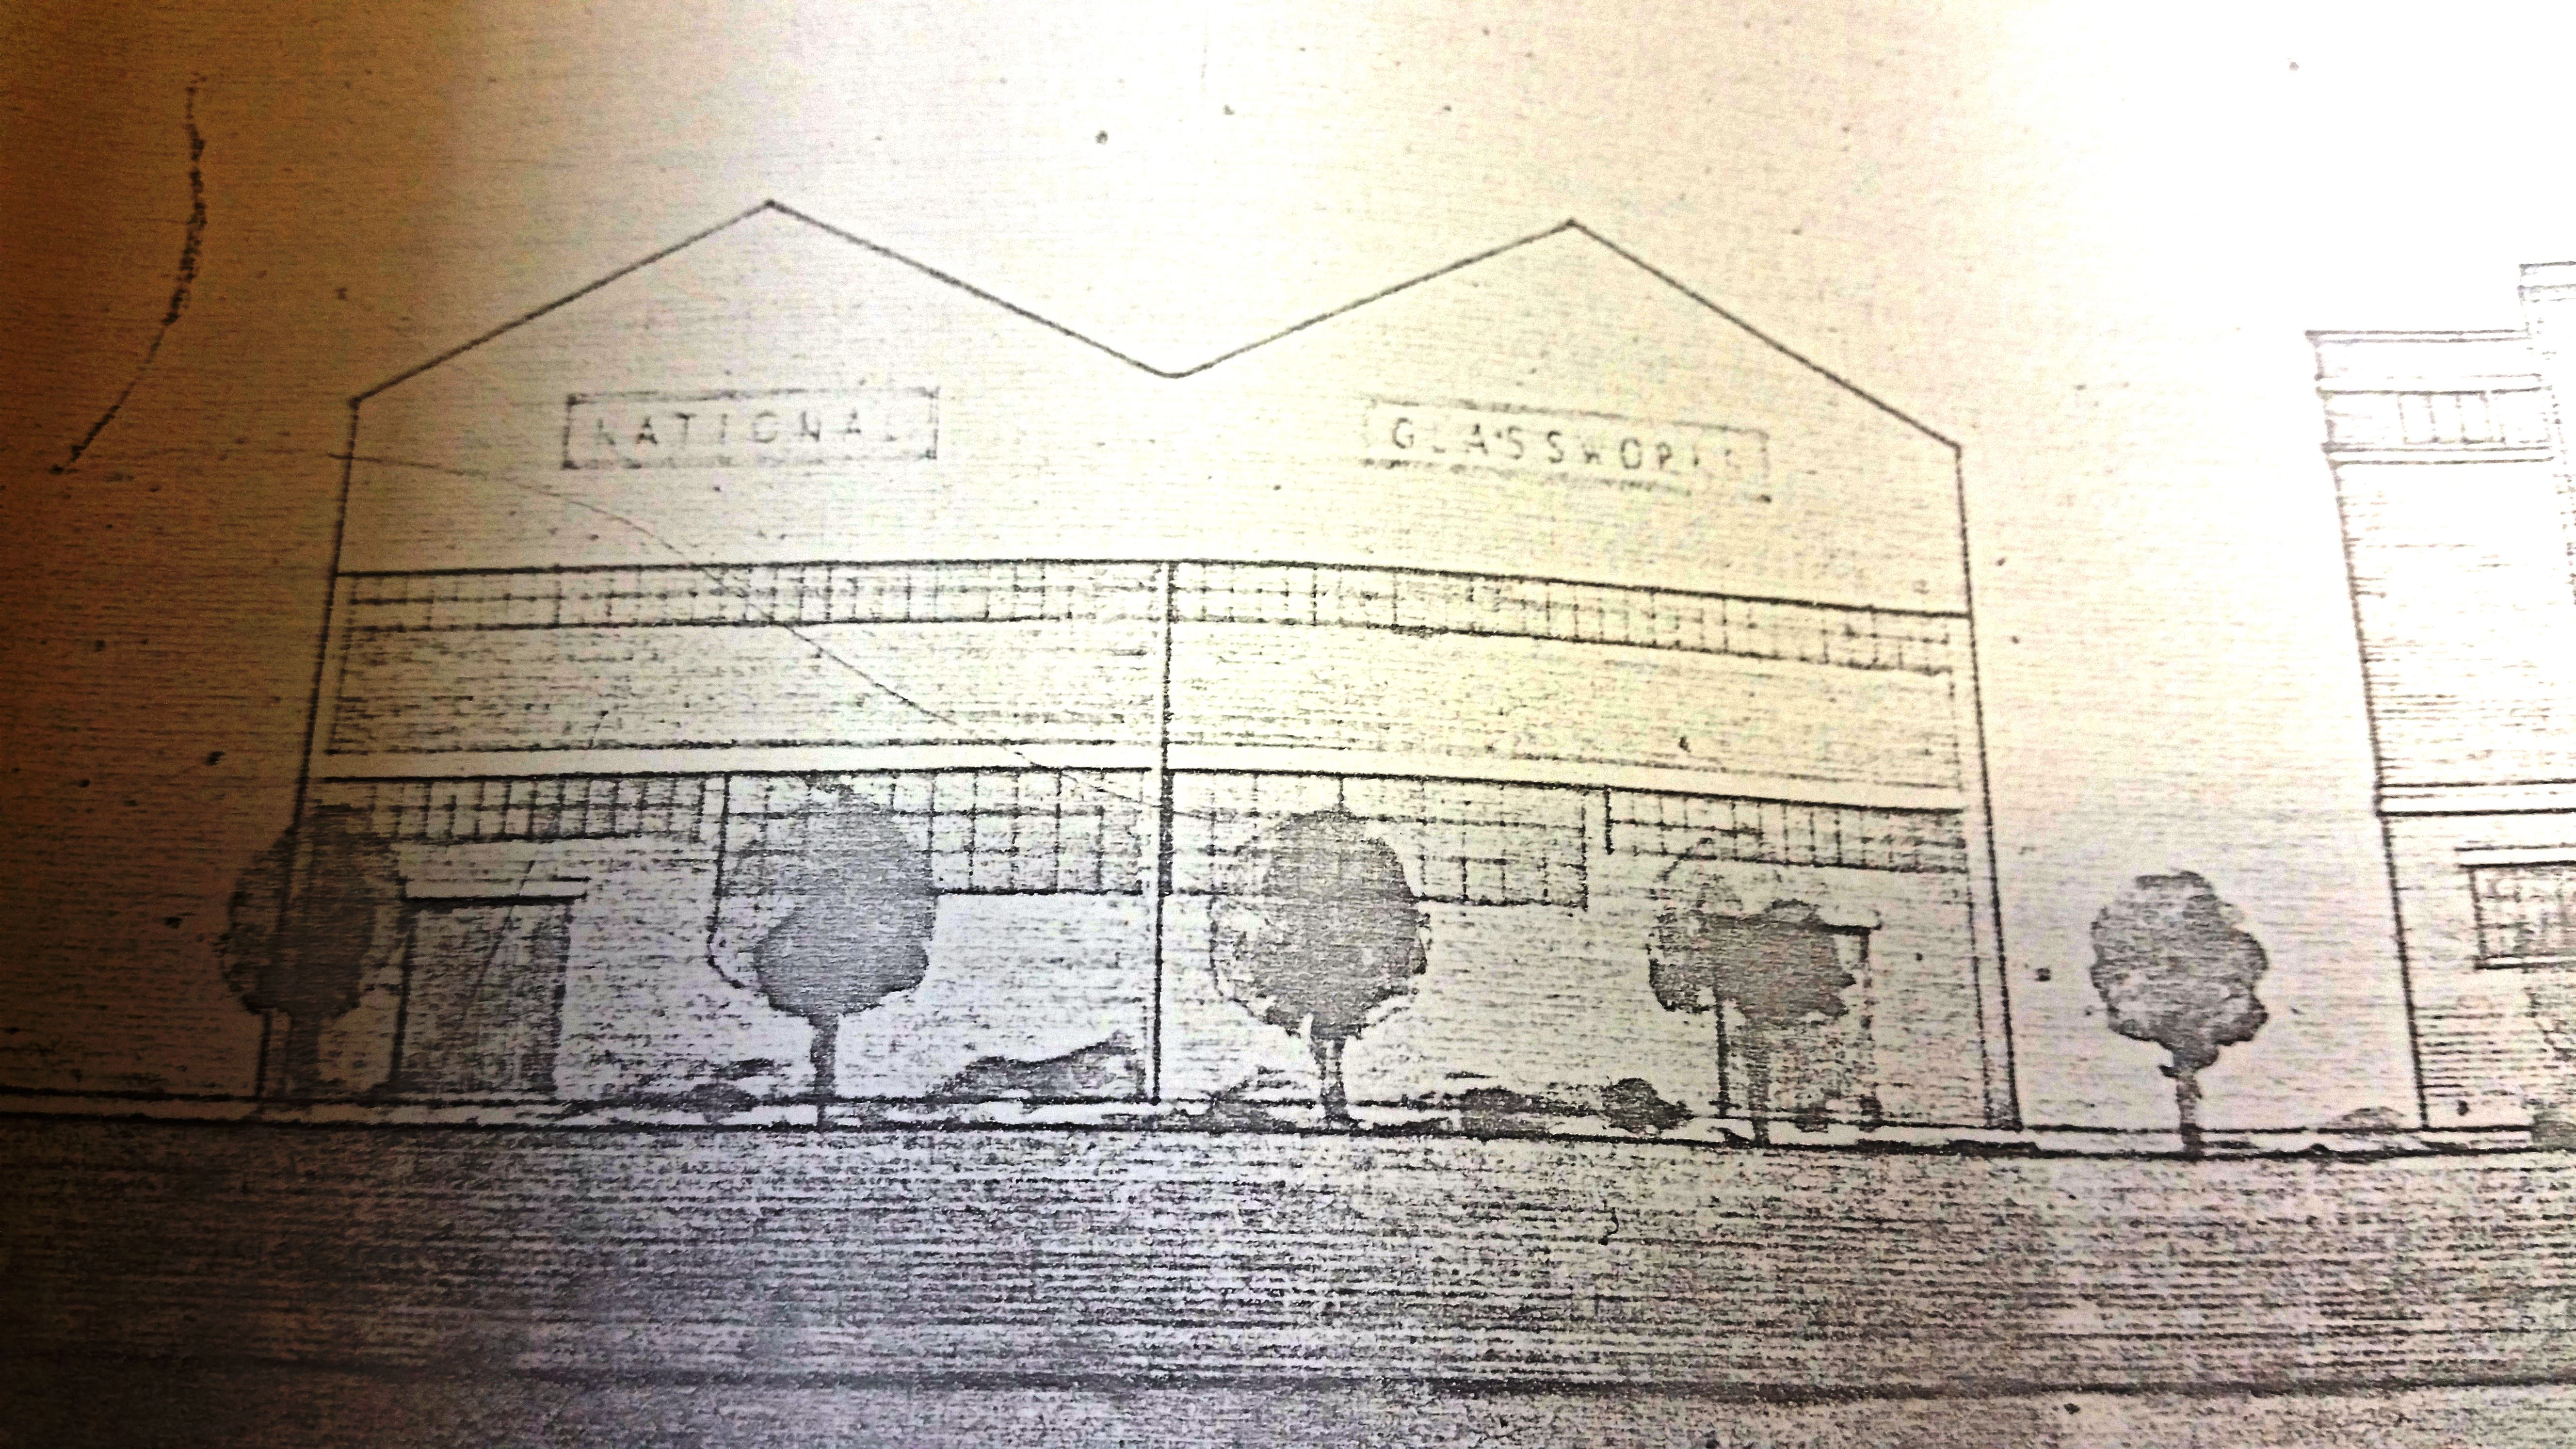 A plan of the Redfearn National Glass Co. factory (RED)